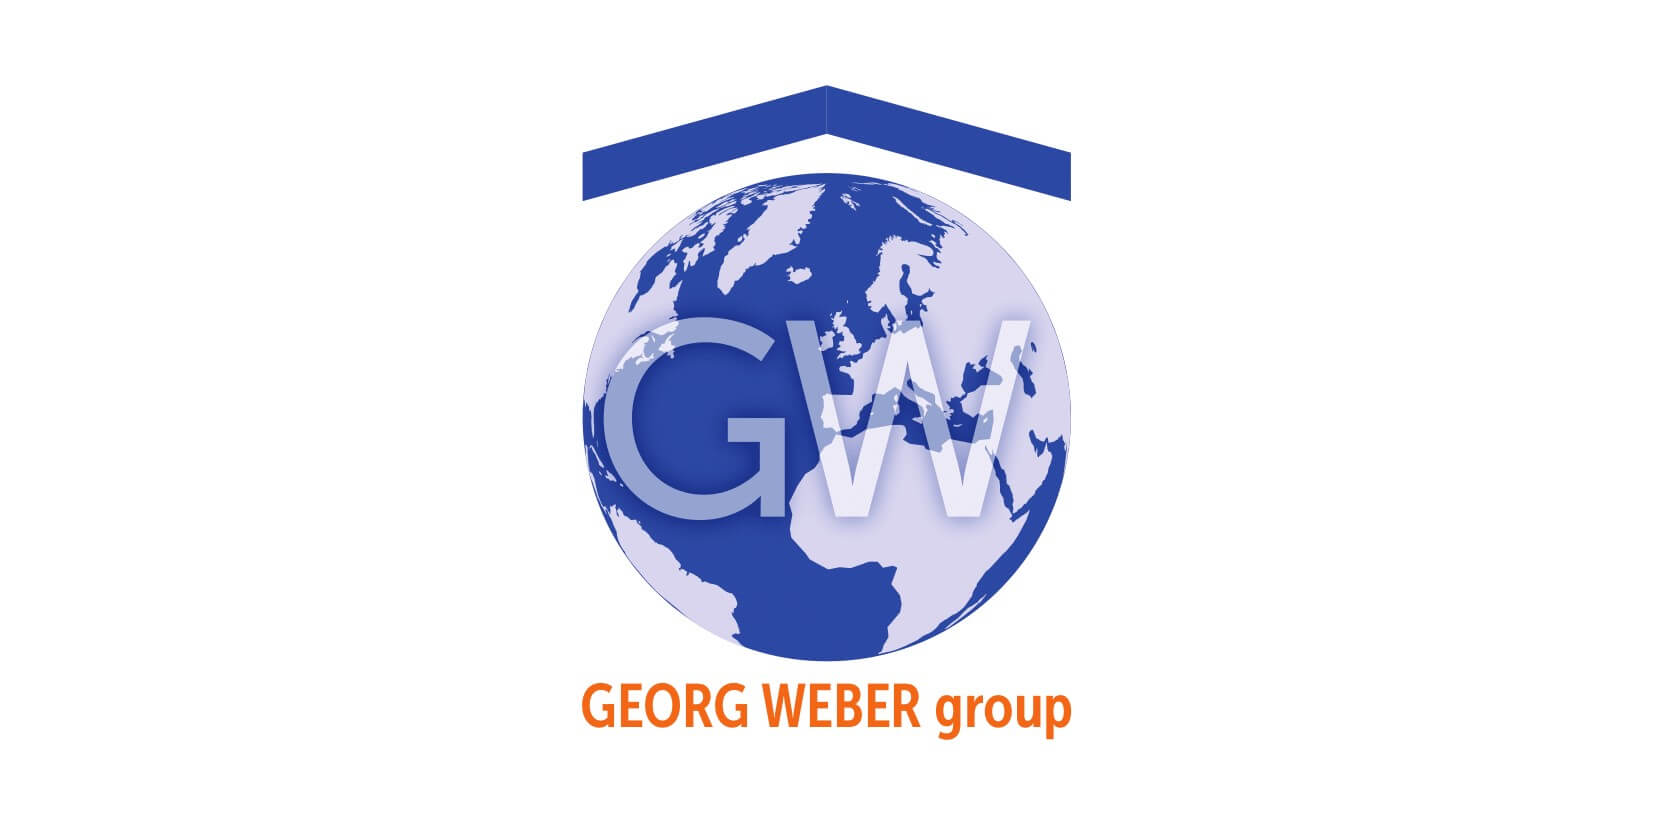 Georg WEBER group